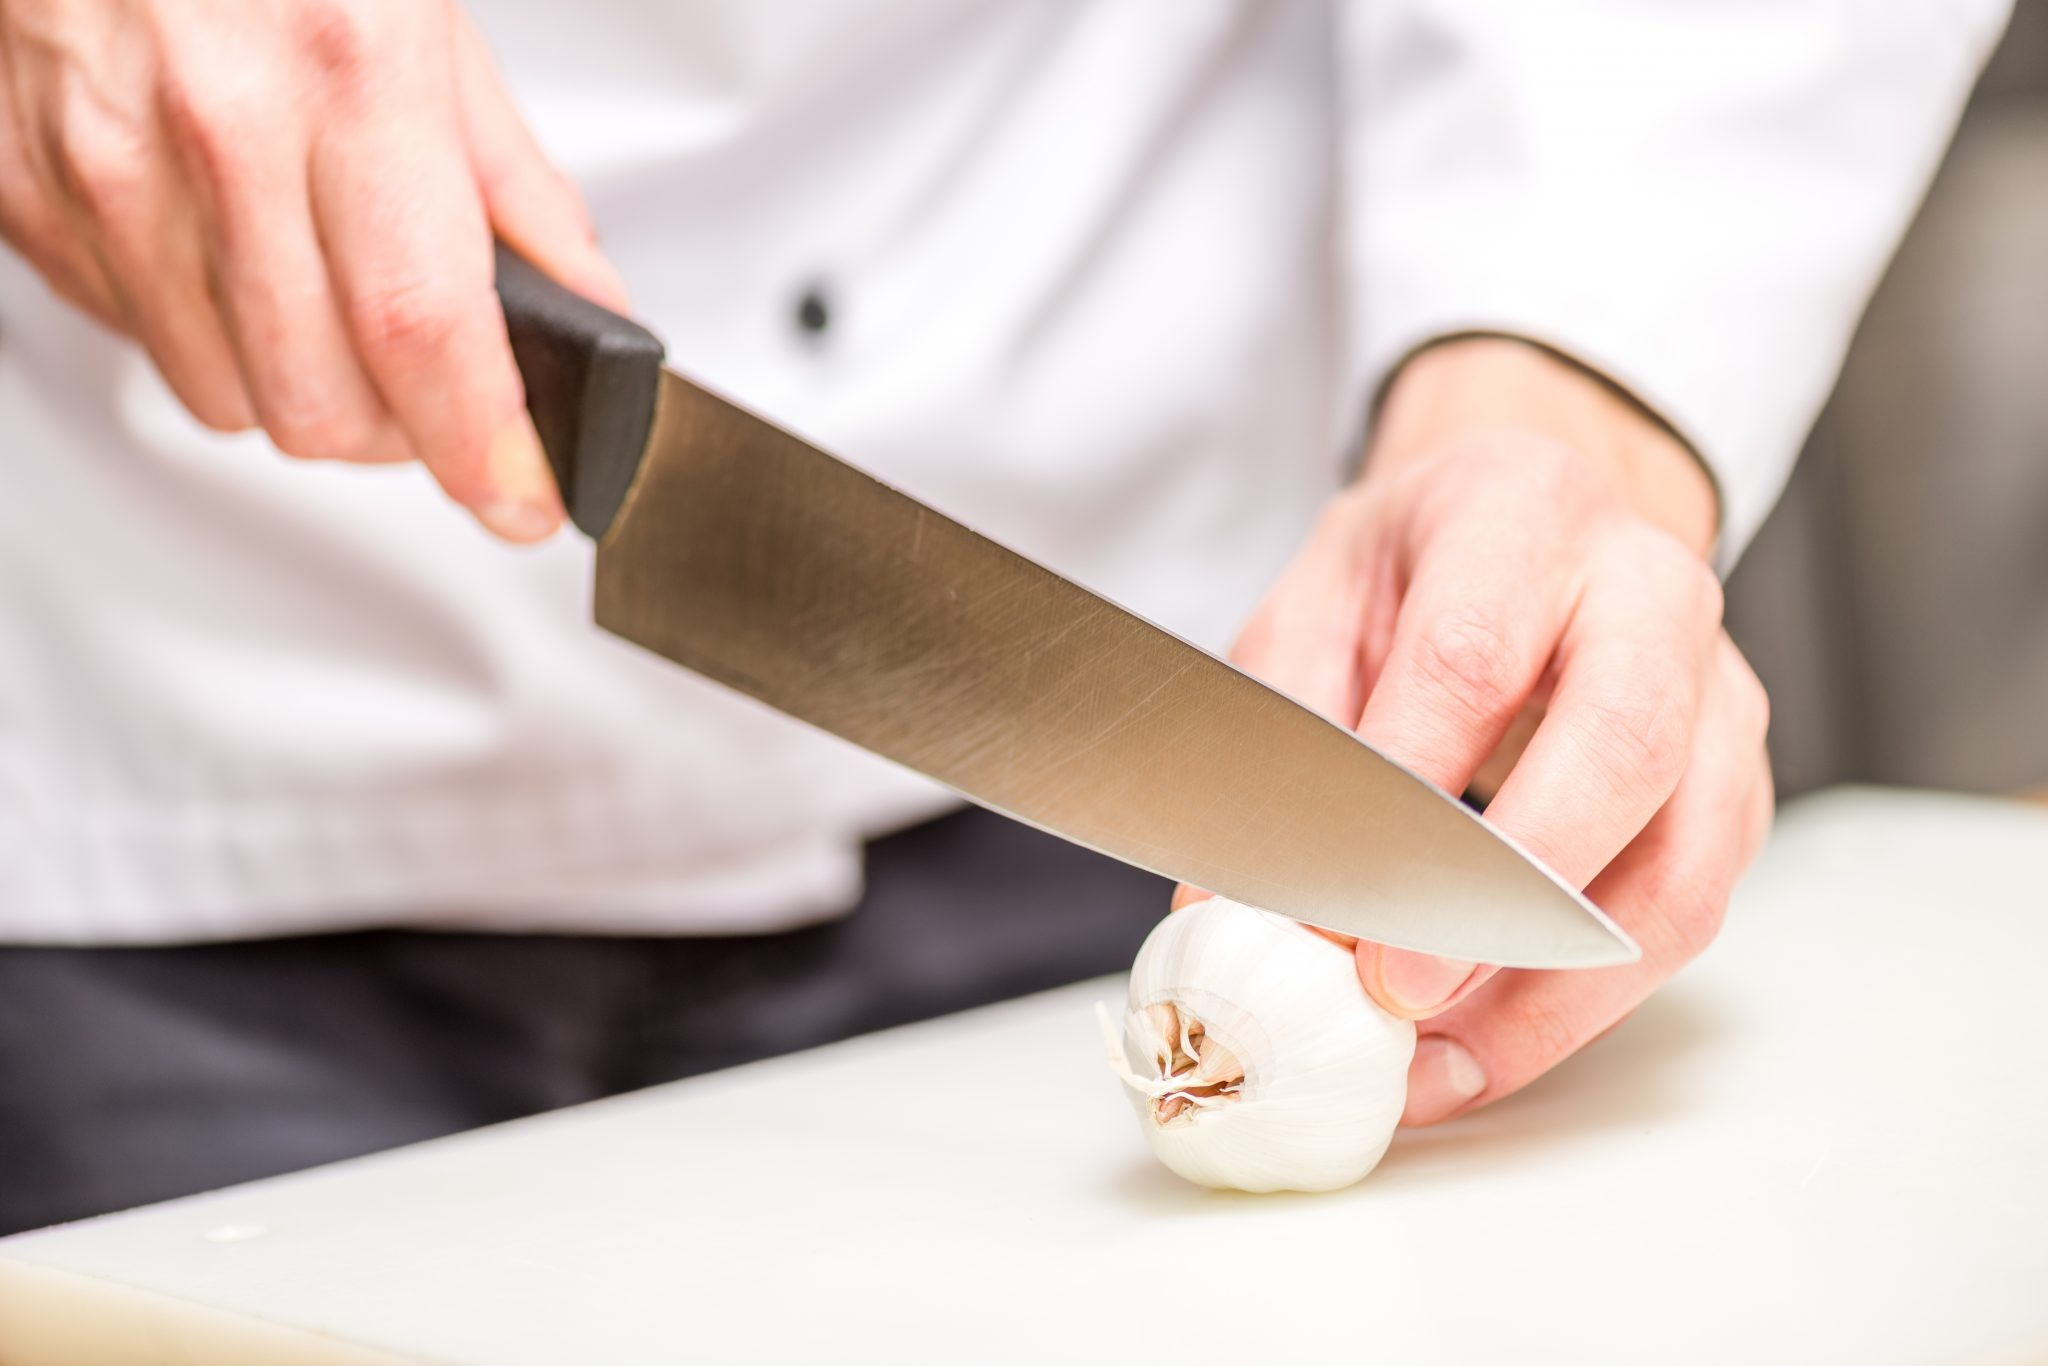 man chopping garlic bulb with knife